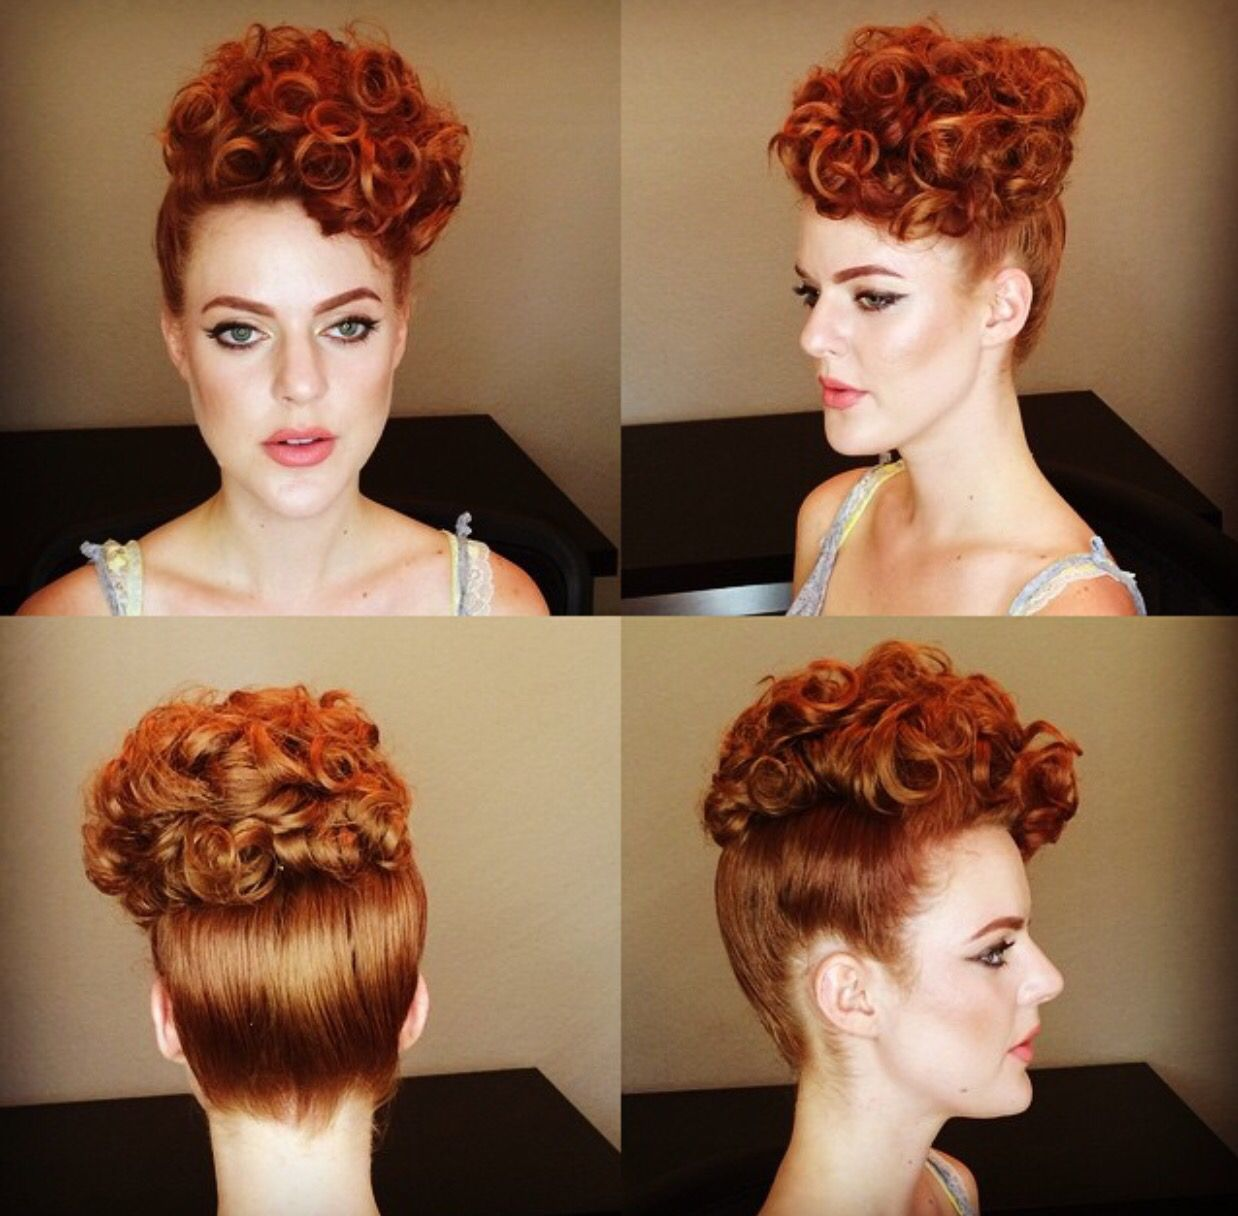 Poodle Hairstyle Done By Miss Rockabilly Ruby Vintage Hairstyles Poodle Hair Hair Styles